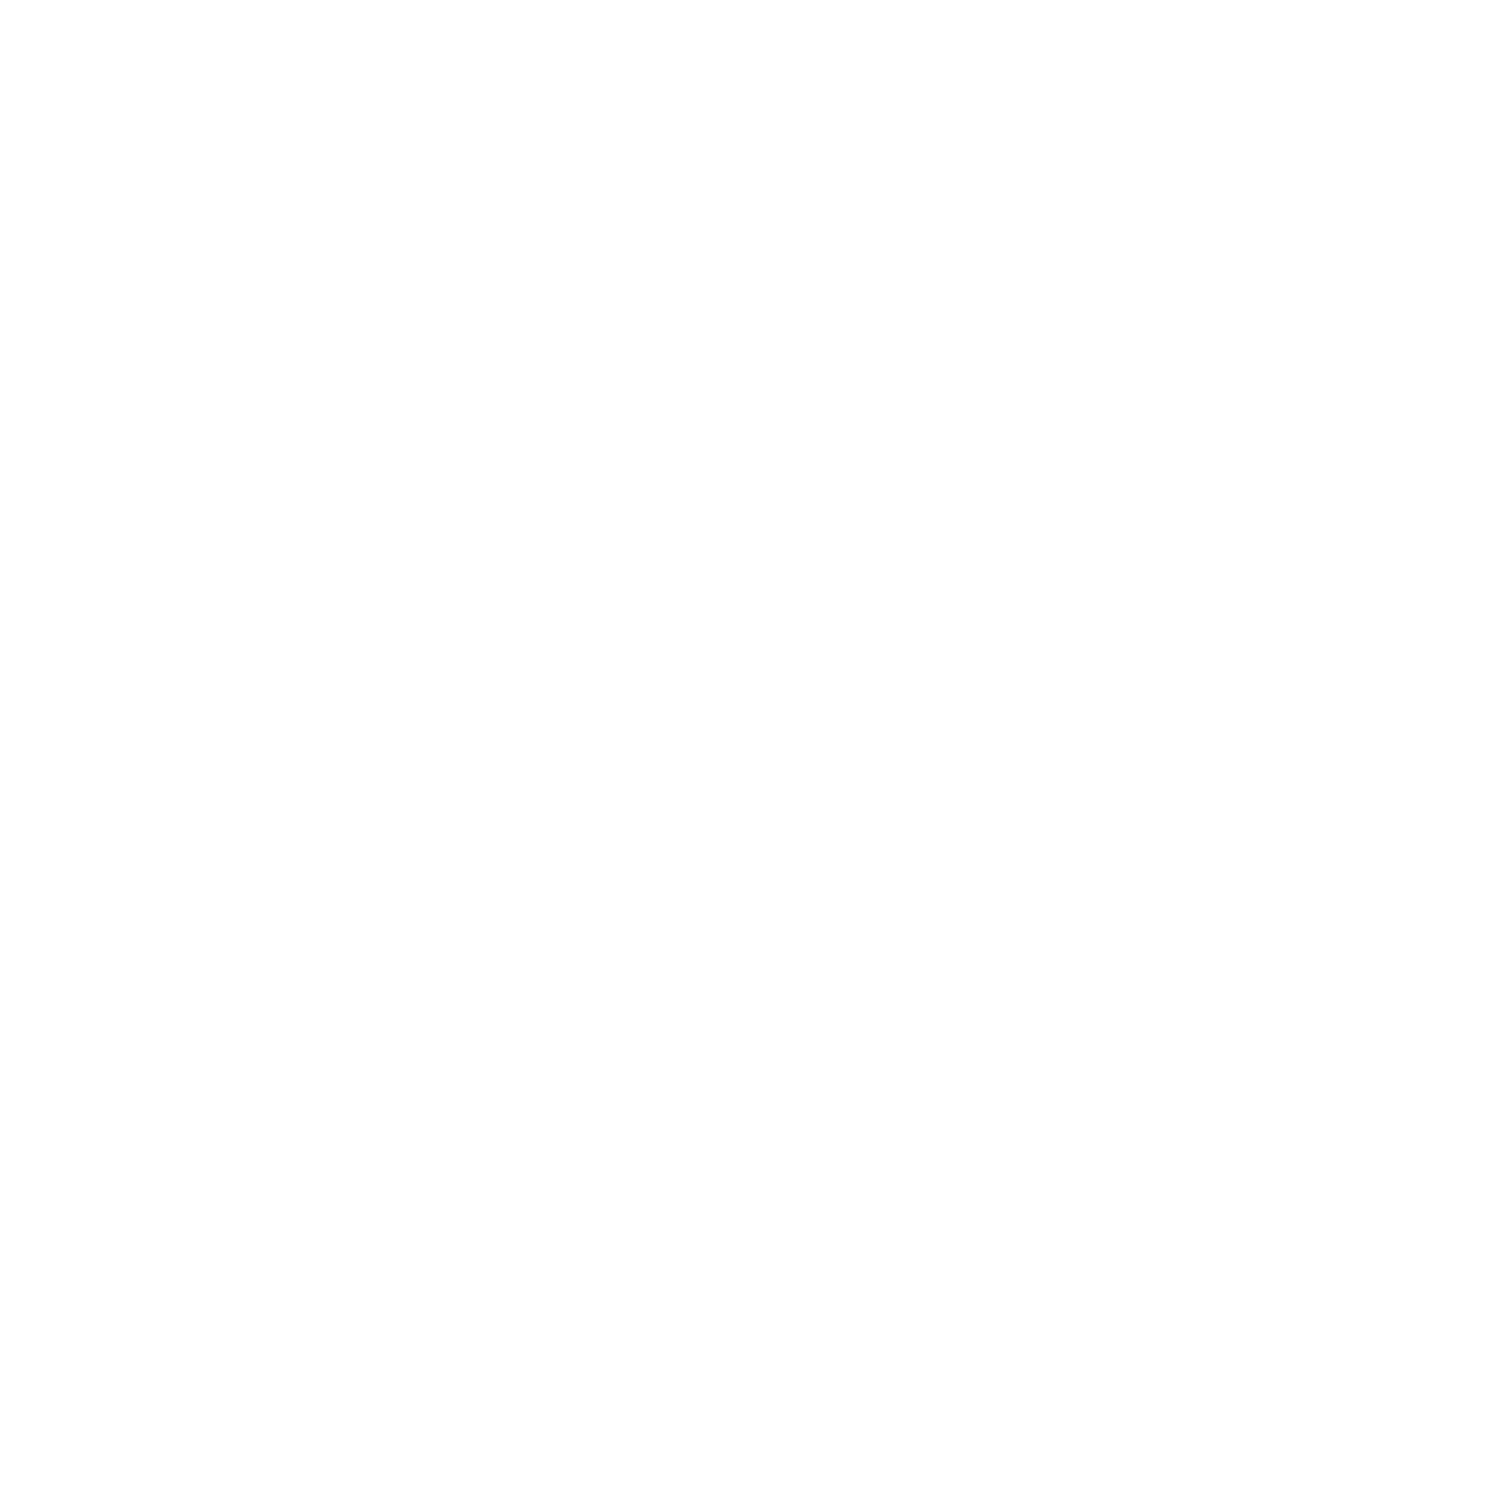 Nate Wind Creative